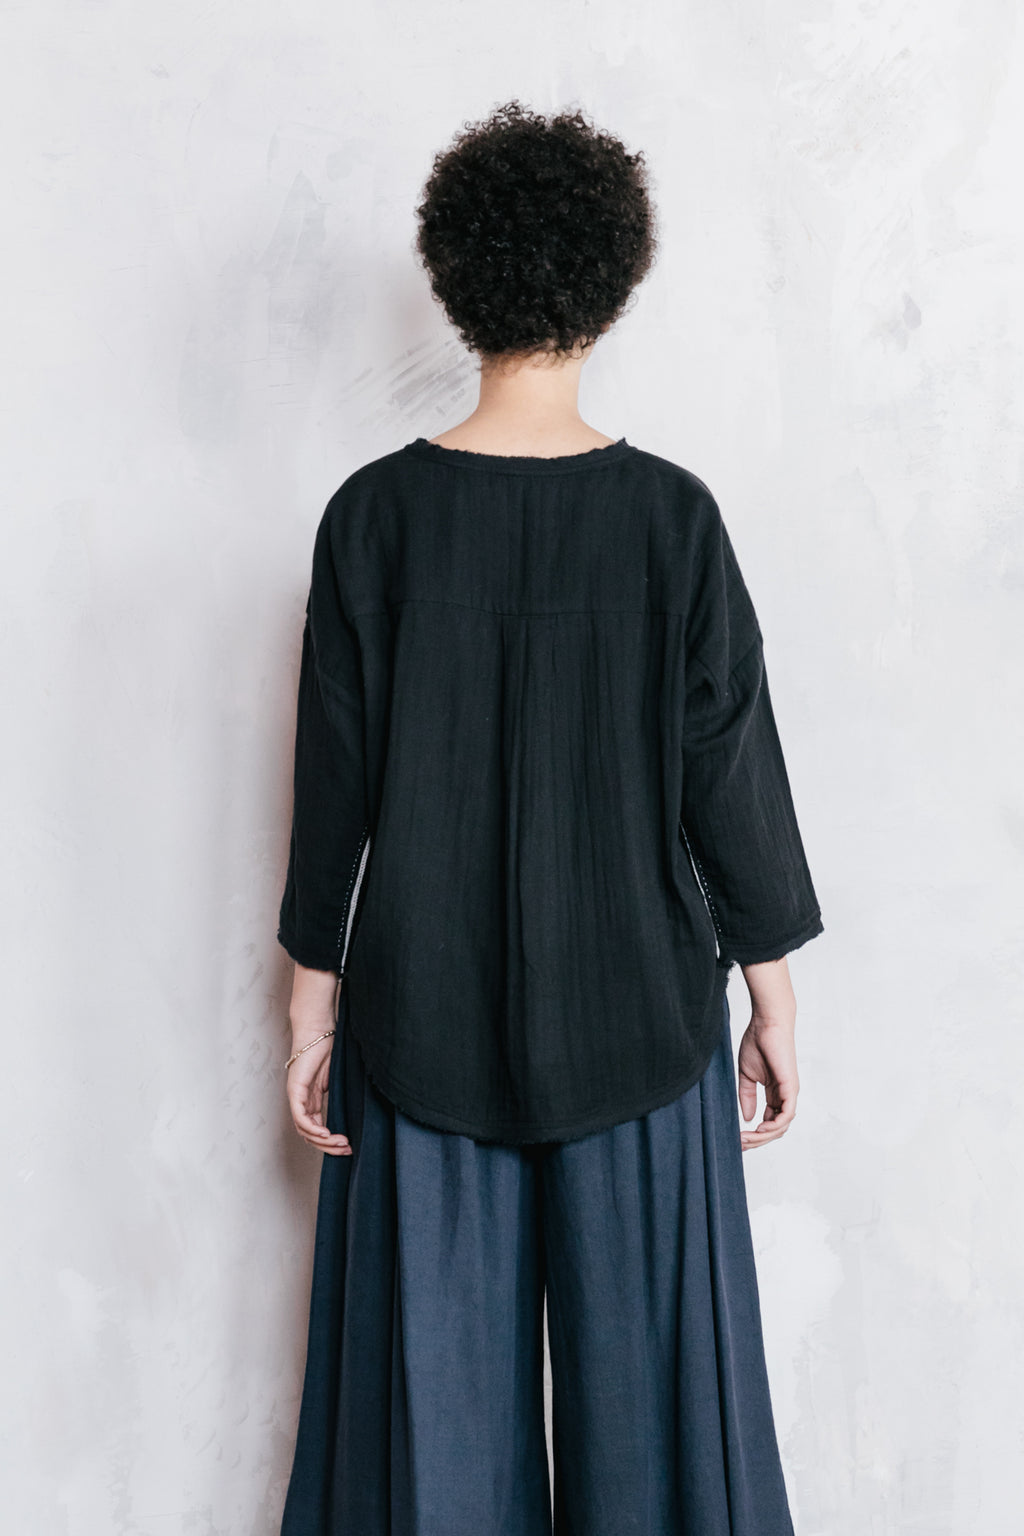 A model wearing a three quarter length sleeve double cotton cloth top in black with wide legged blue palazzo pants.